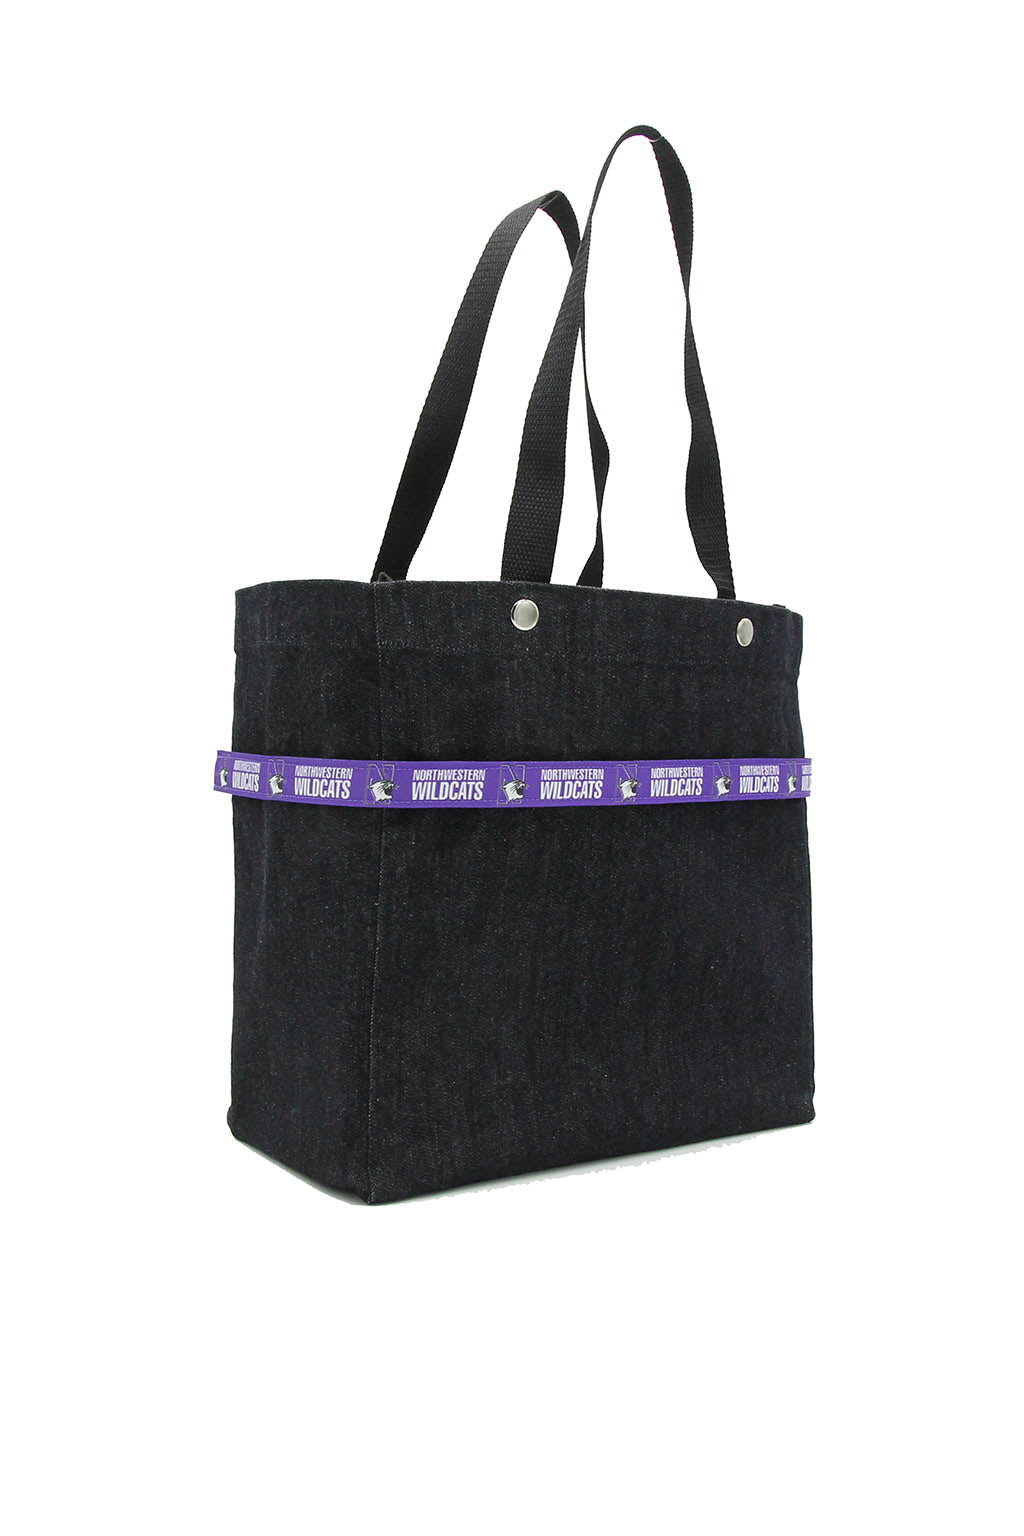 College Ribbon Tote - Northwestern Wildcats